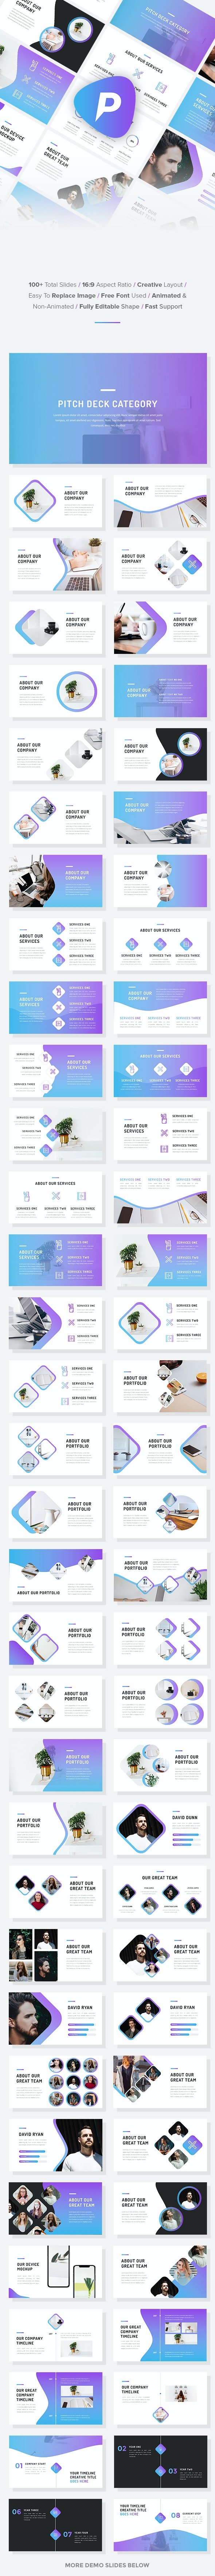 Pitch - Startup Pitch Deck Keynote Template - Business Keynote Templates